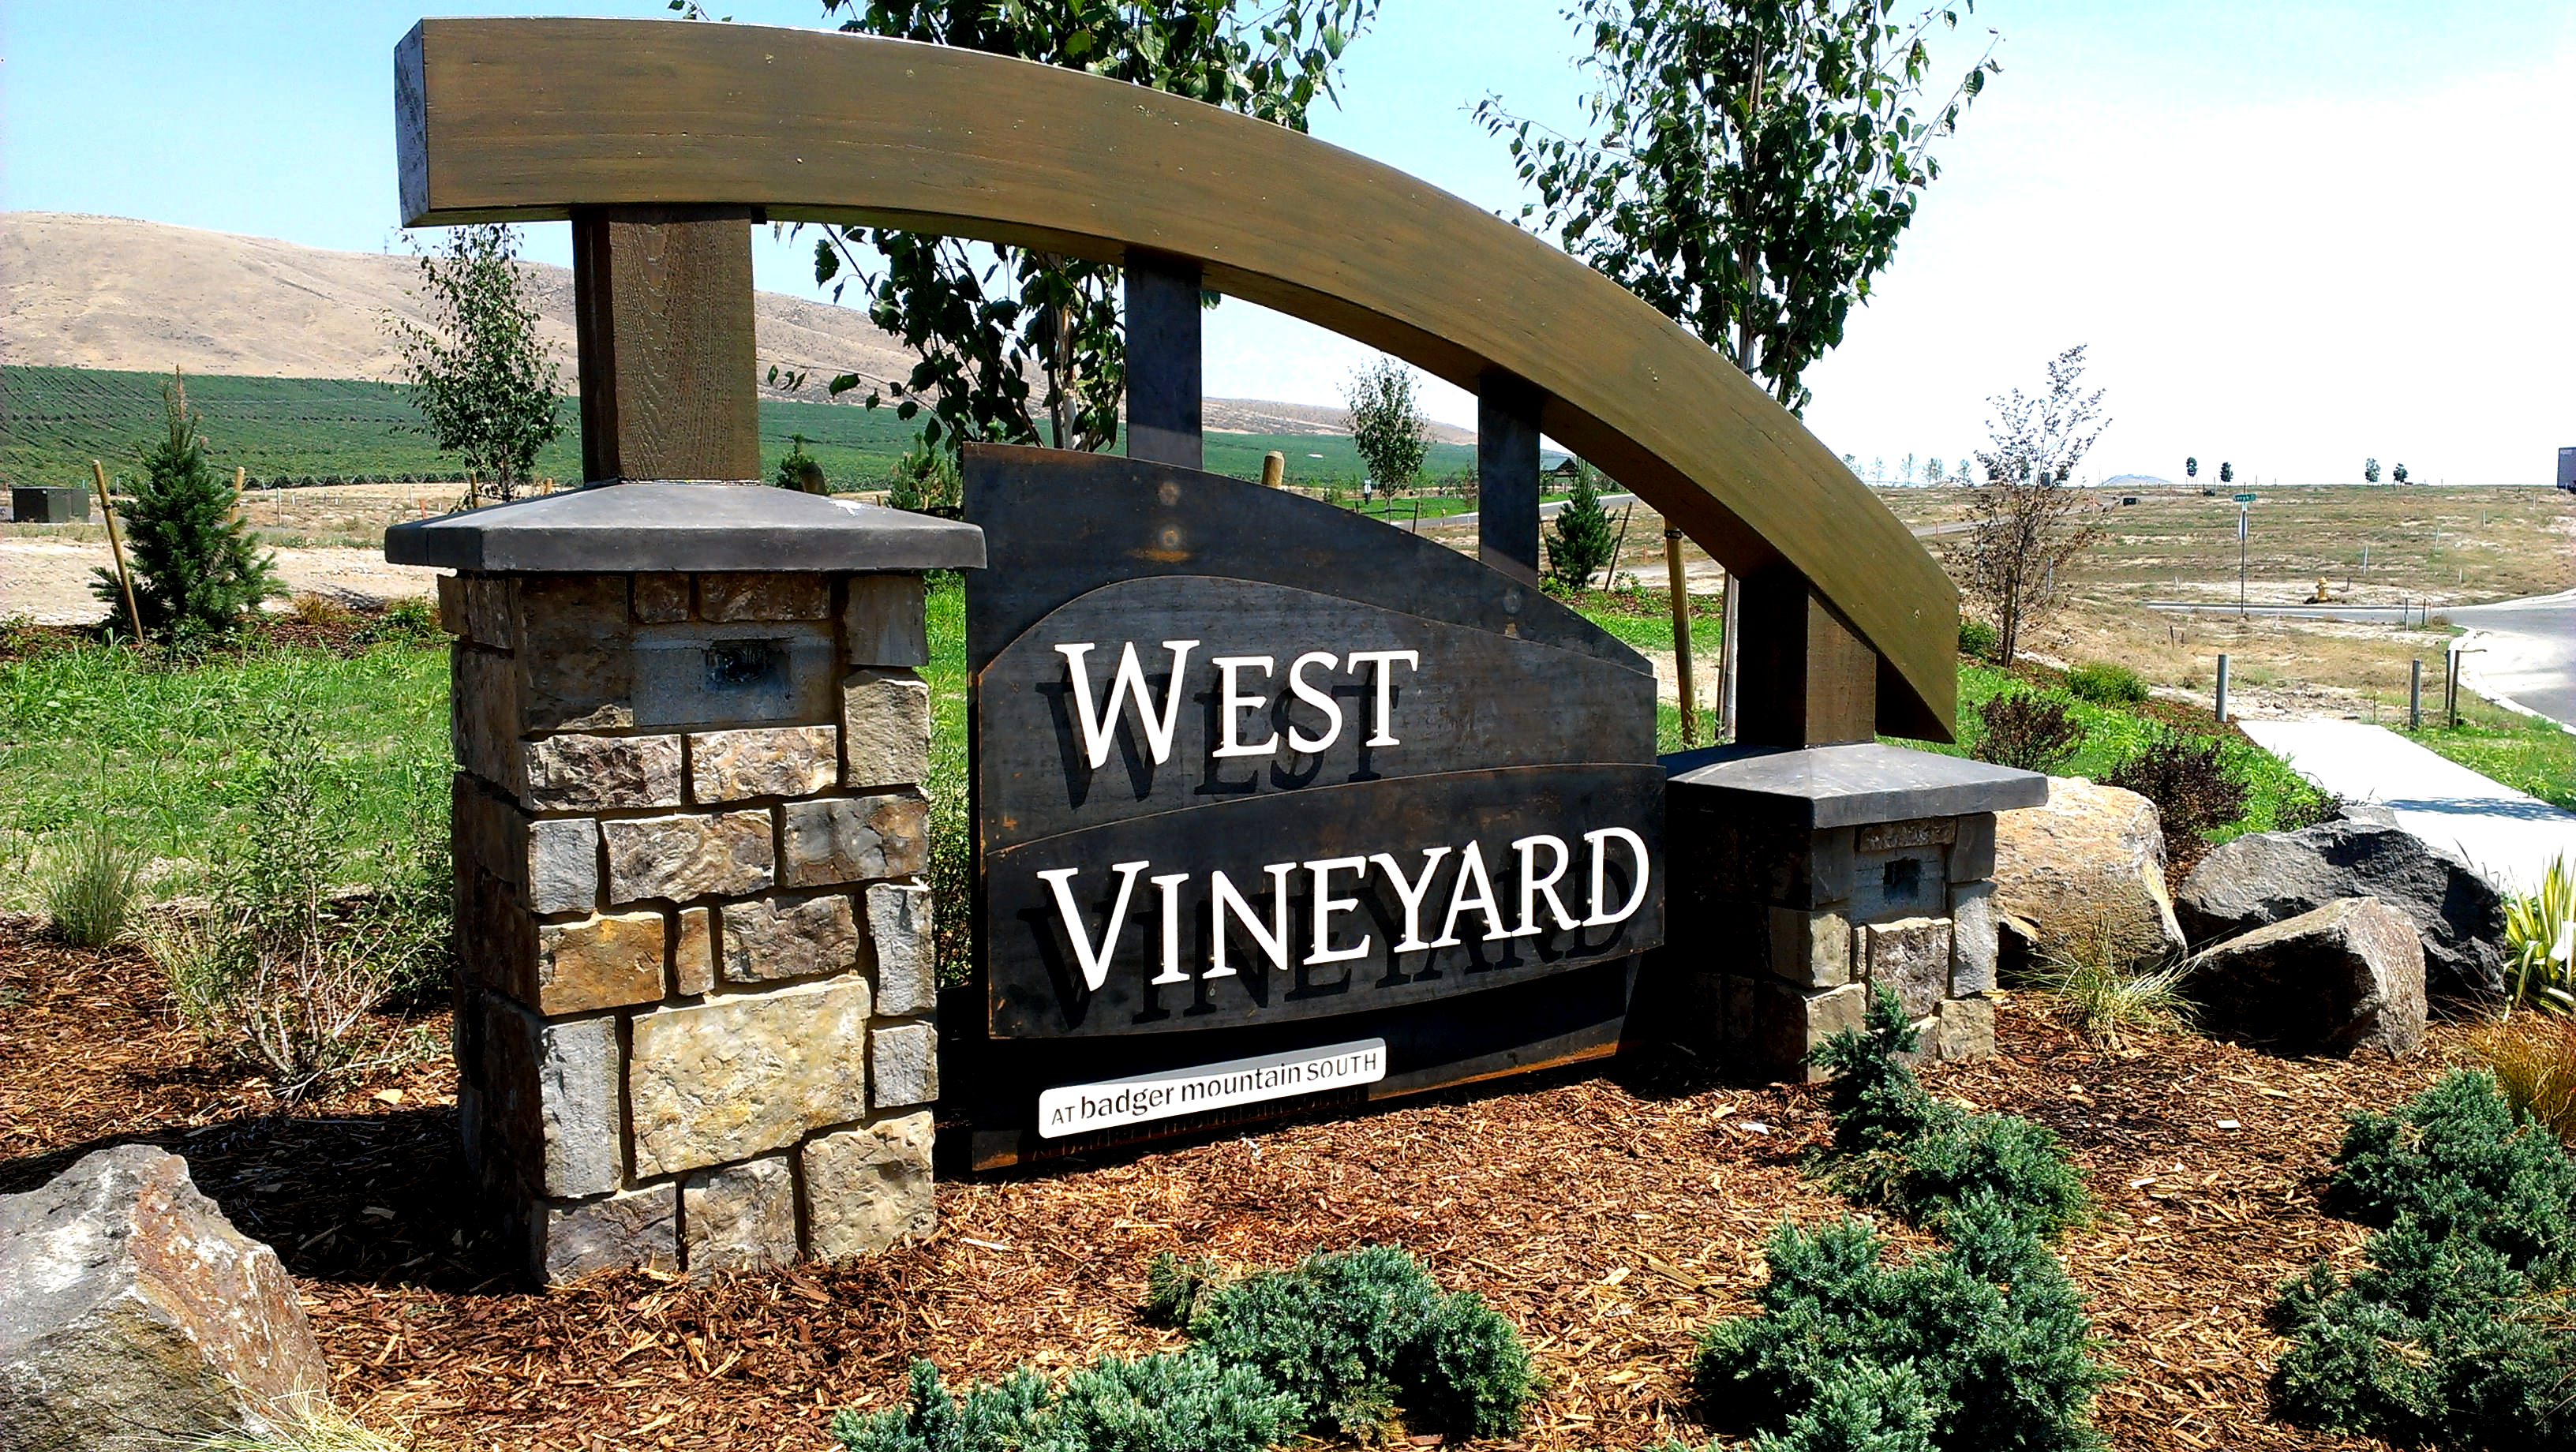 West Vineyard Monument Sign